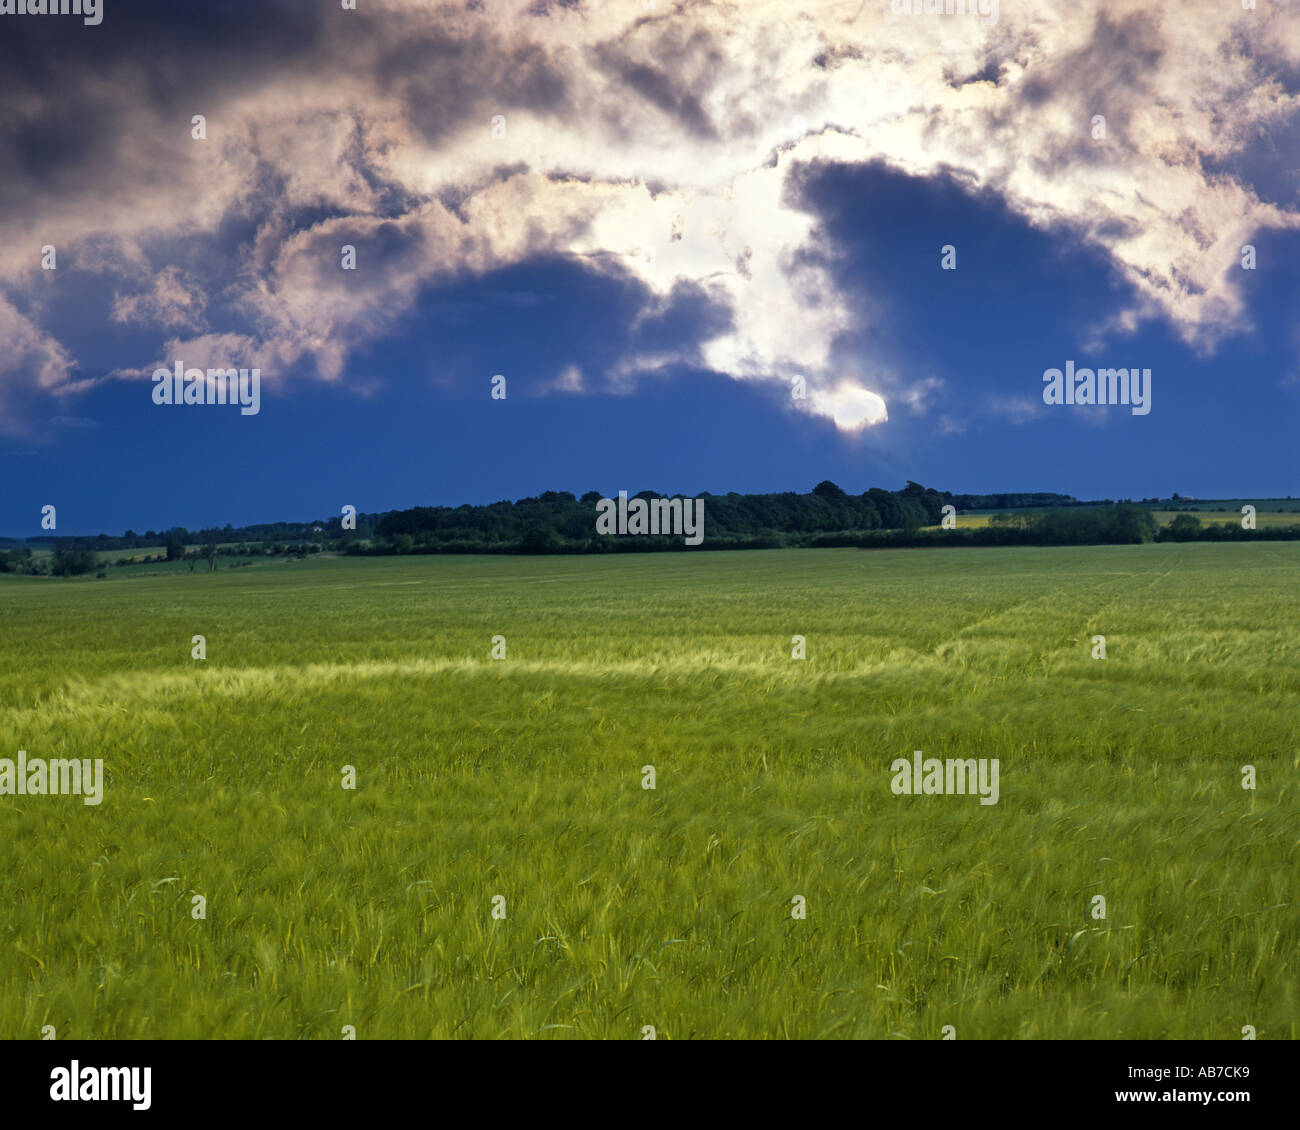 GB - GLOUCESTERSHIRE:  Barley Field in the Cotswolds - Stock Image